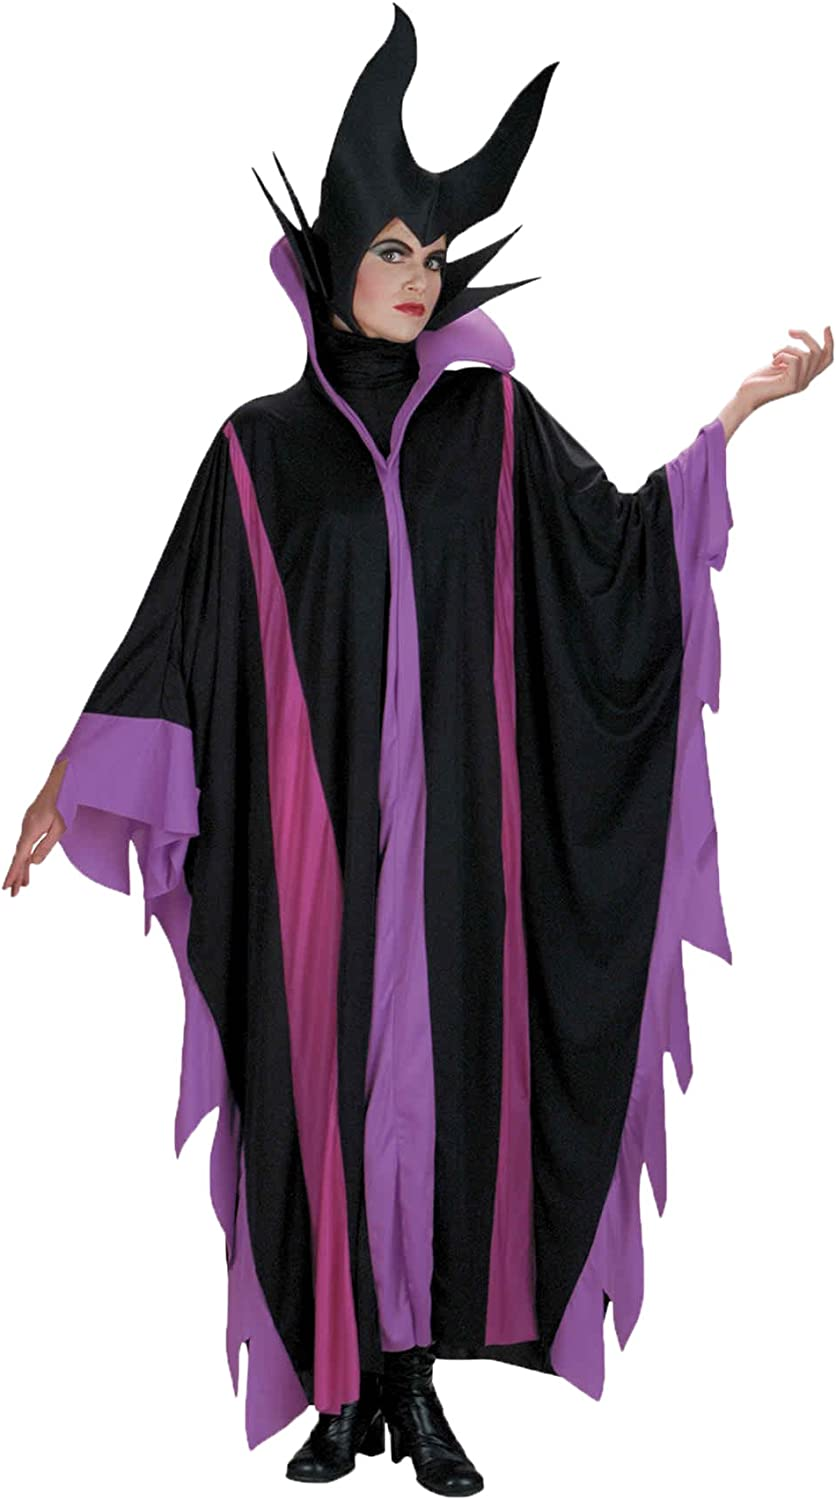 Maleficent Deluxe Evil Queen Cosplay Costume Halloween Outfit Fancy Dress Adult